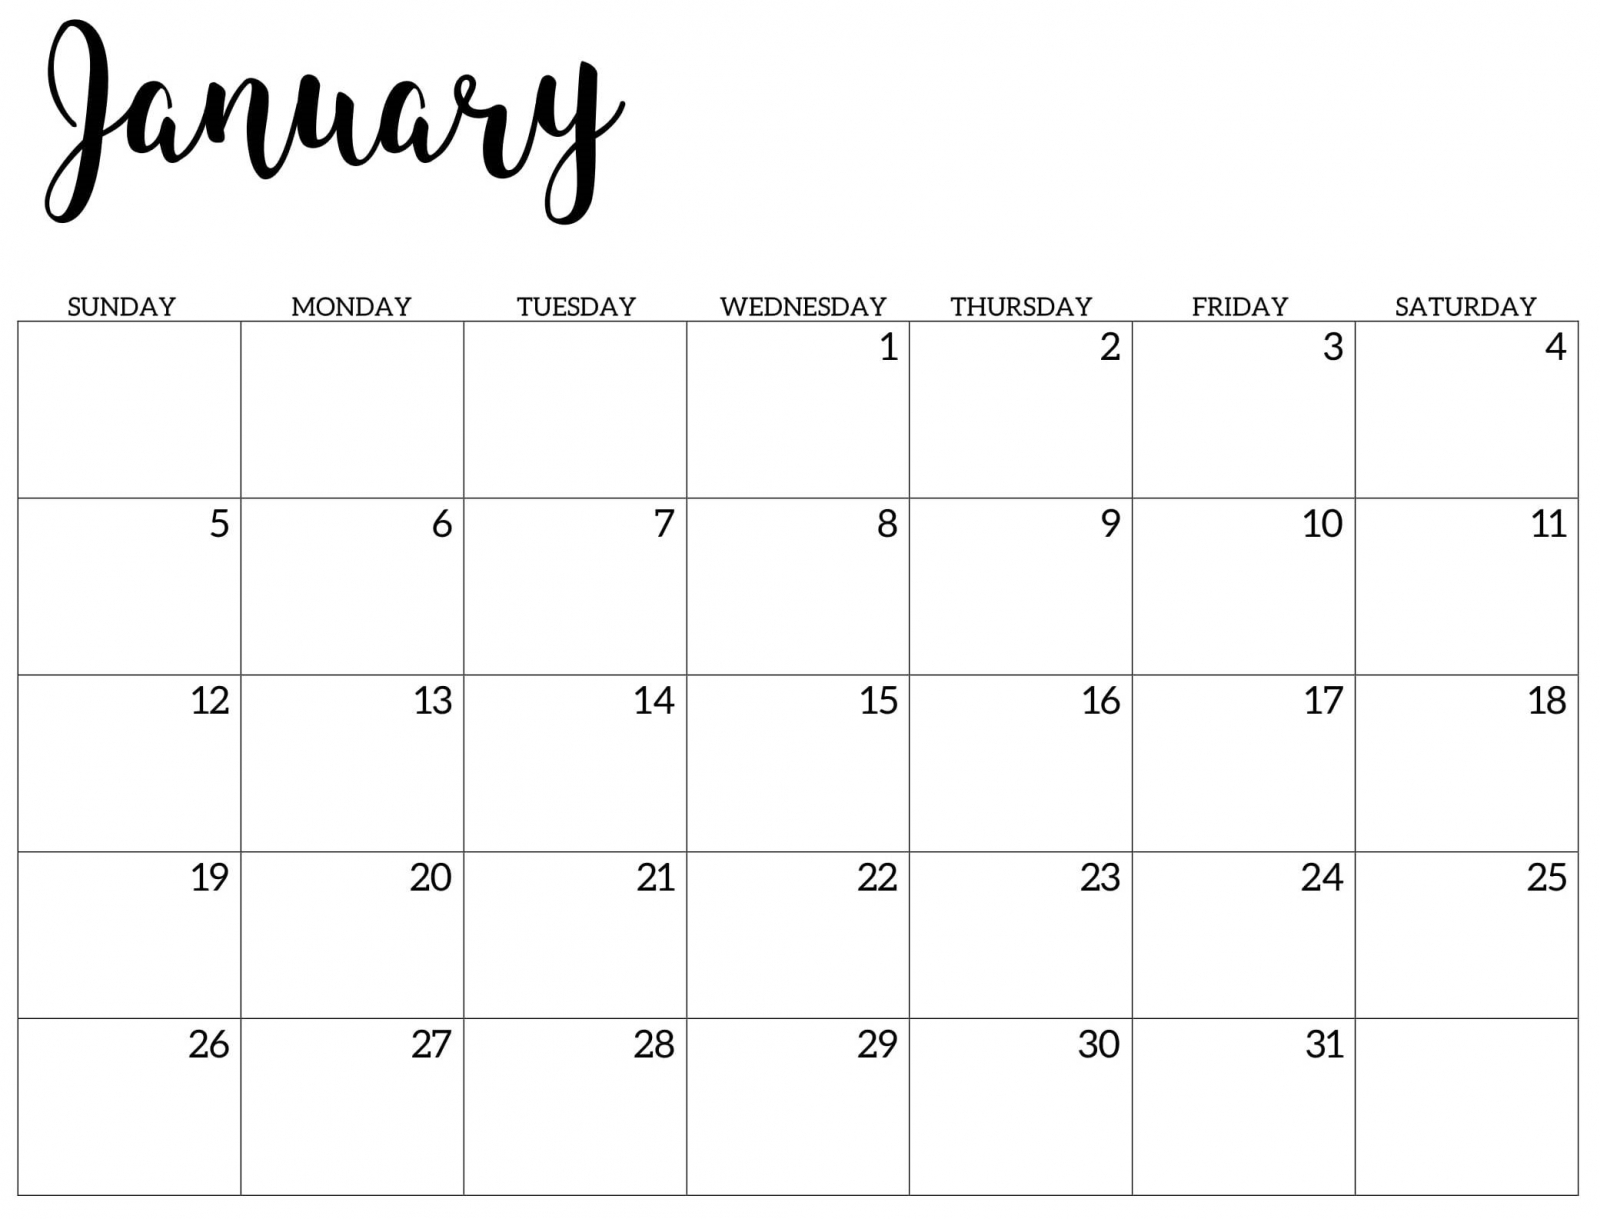 Take Free Printable From January To December For Year 2020 ...